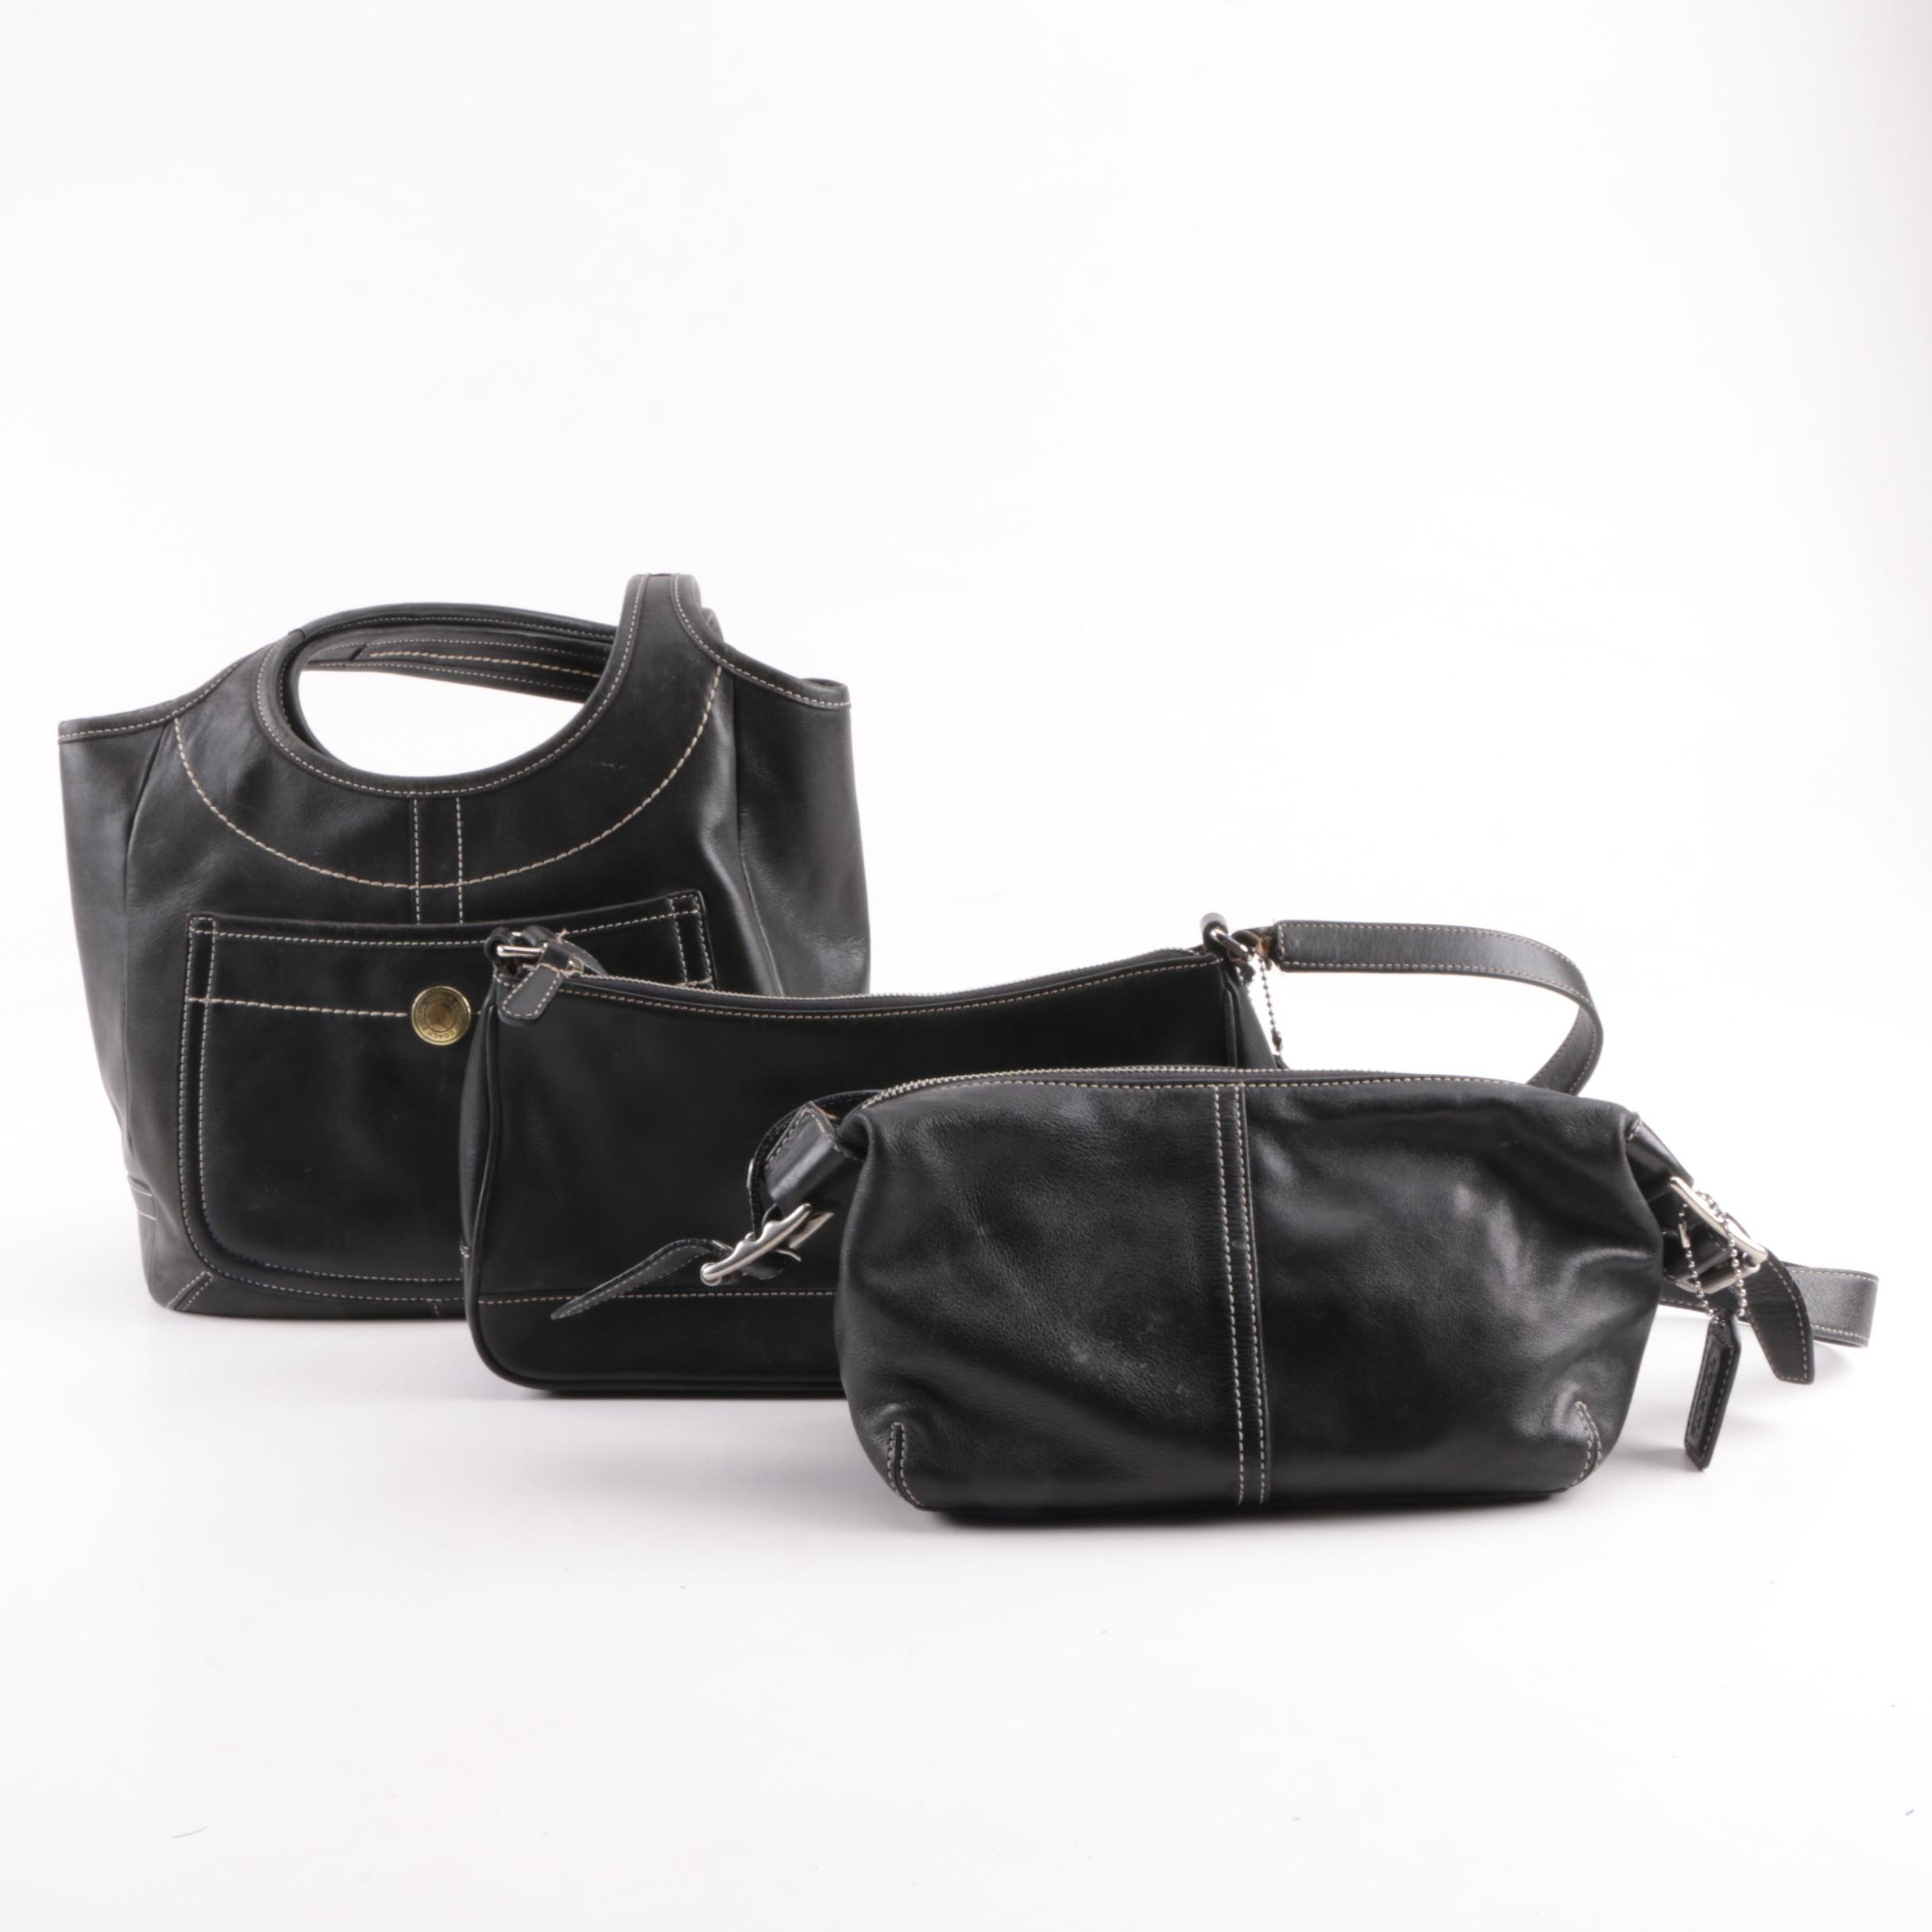 Coach Ergo Legacy Black Leather Hobo Bag with Others